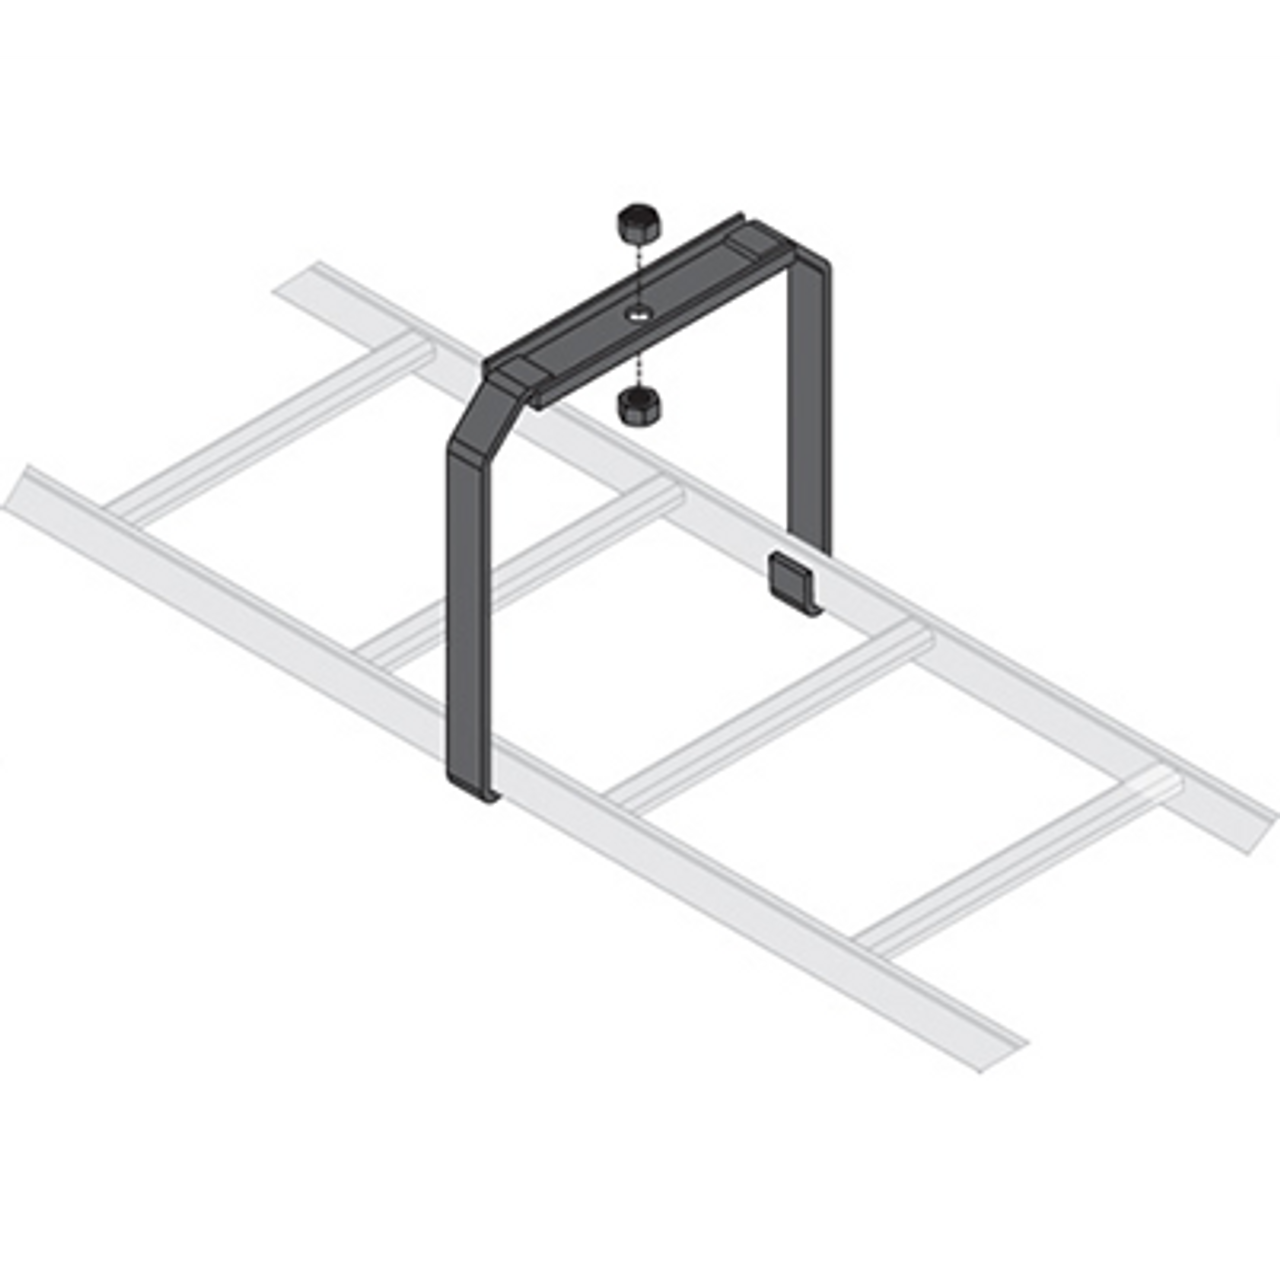 Ladder Rack Brackets Ceiling Mount Kit Rackmount Solutions